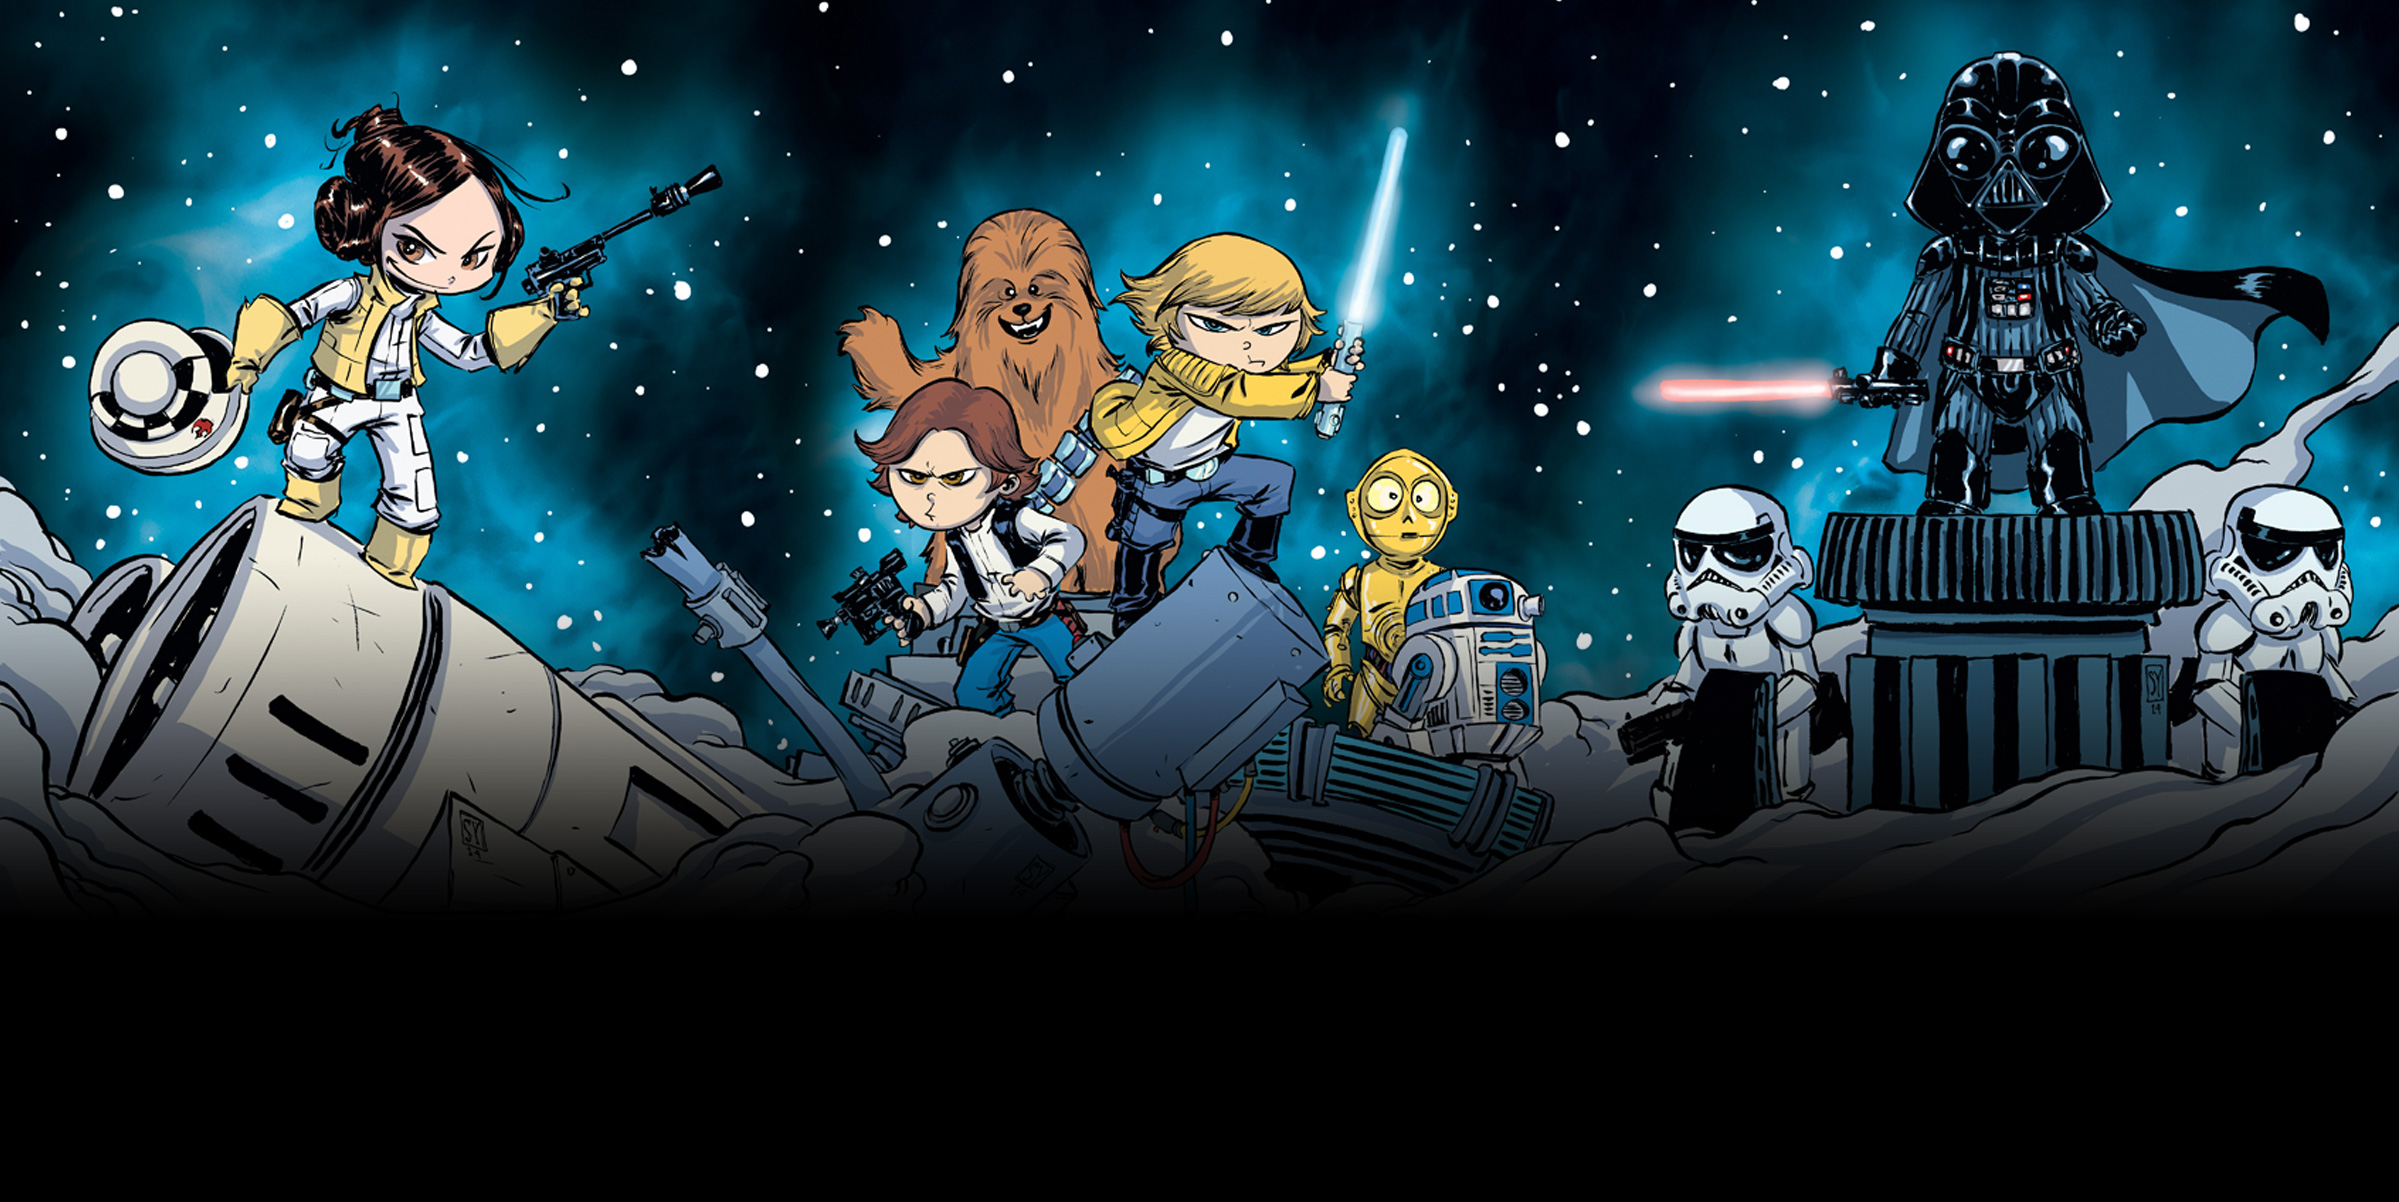 Cool Star Wars Background Posted By Sarah Cunningham